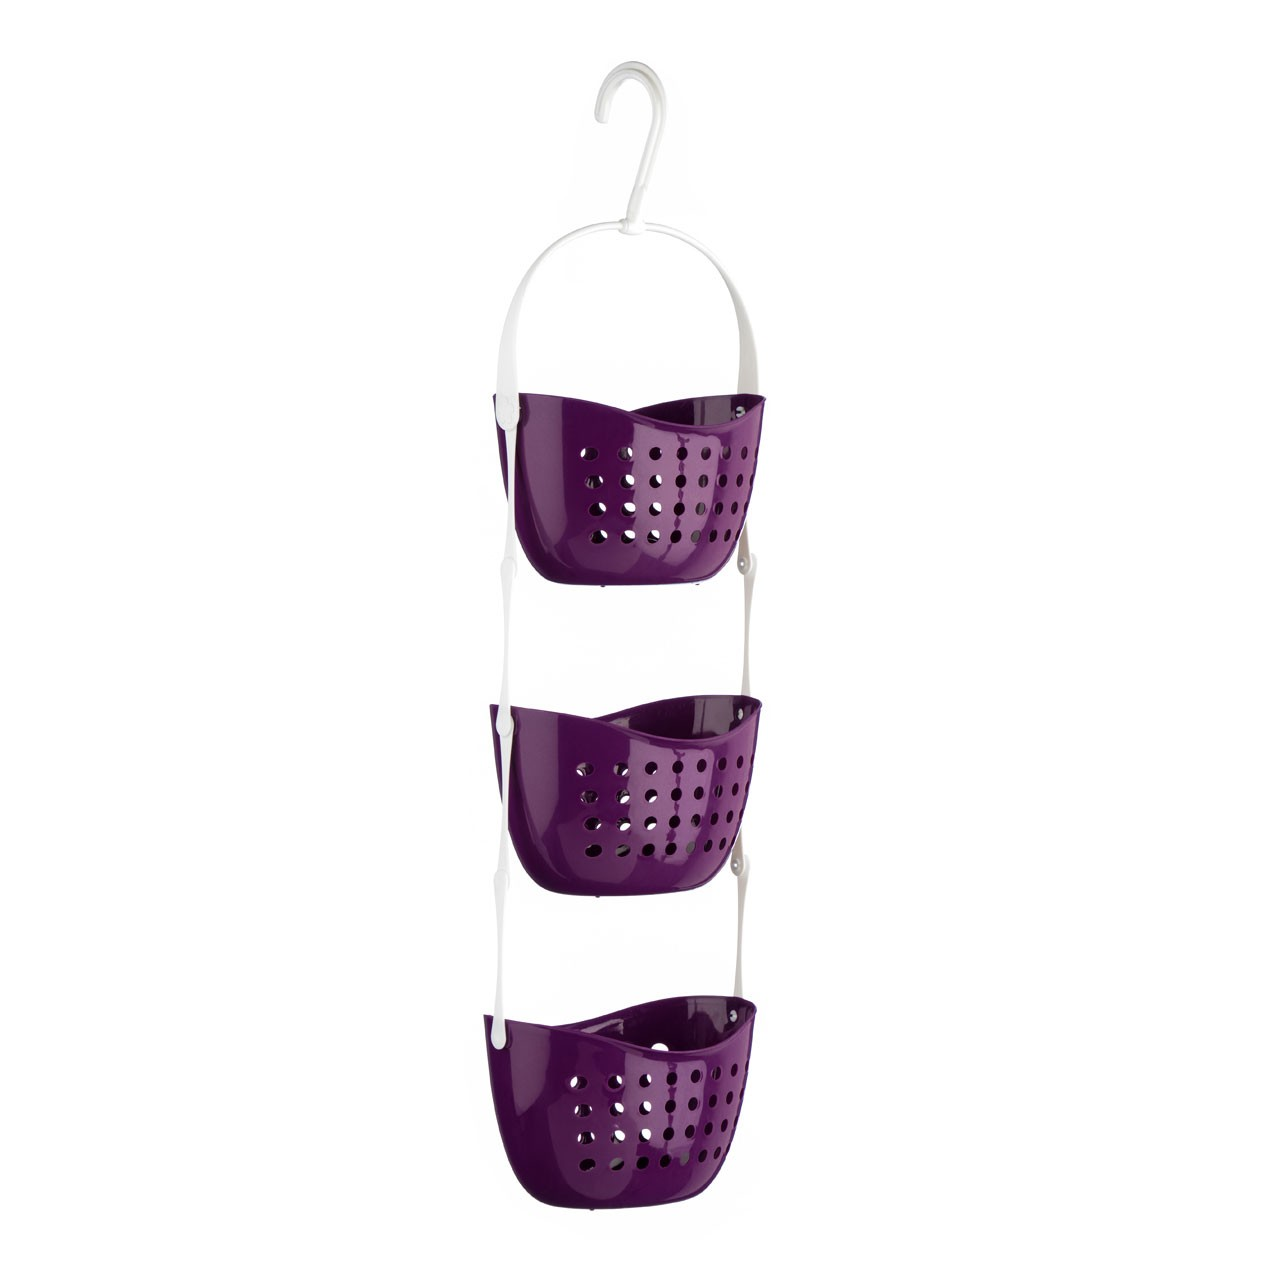 Prime Furnishing 3-Tier Shower Caddy - Purple